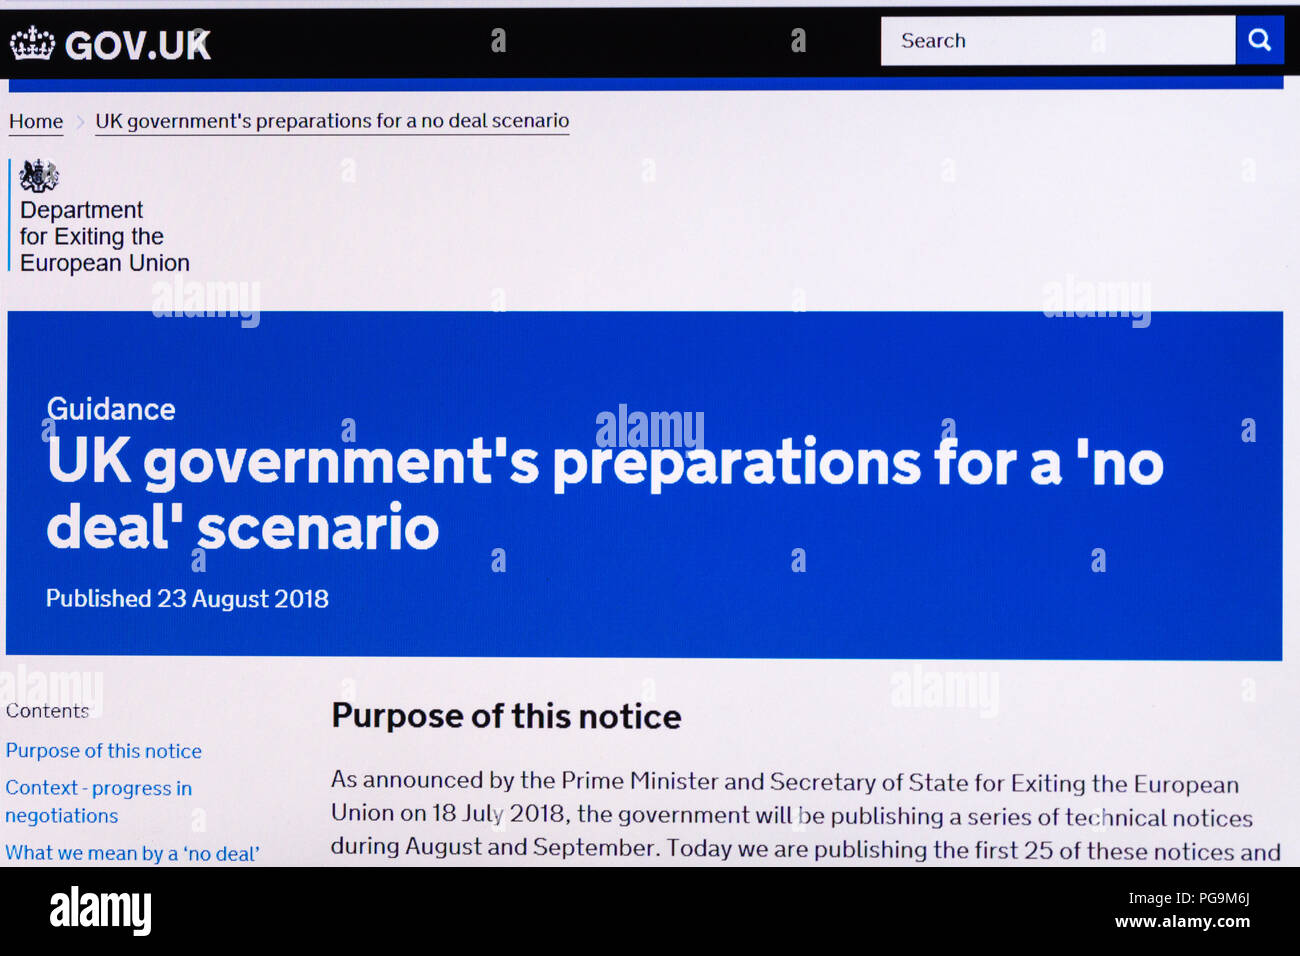 Gov.uk website screenshot displaying information about the UK government's preparations for a no deal Brexit scenario, August 2018 - Stock Image